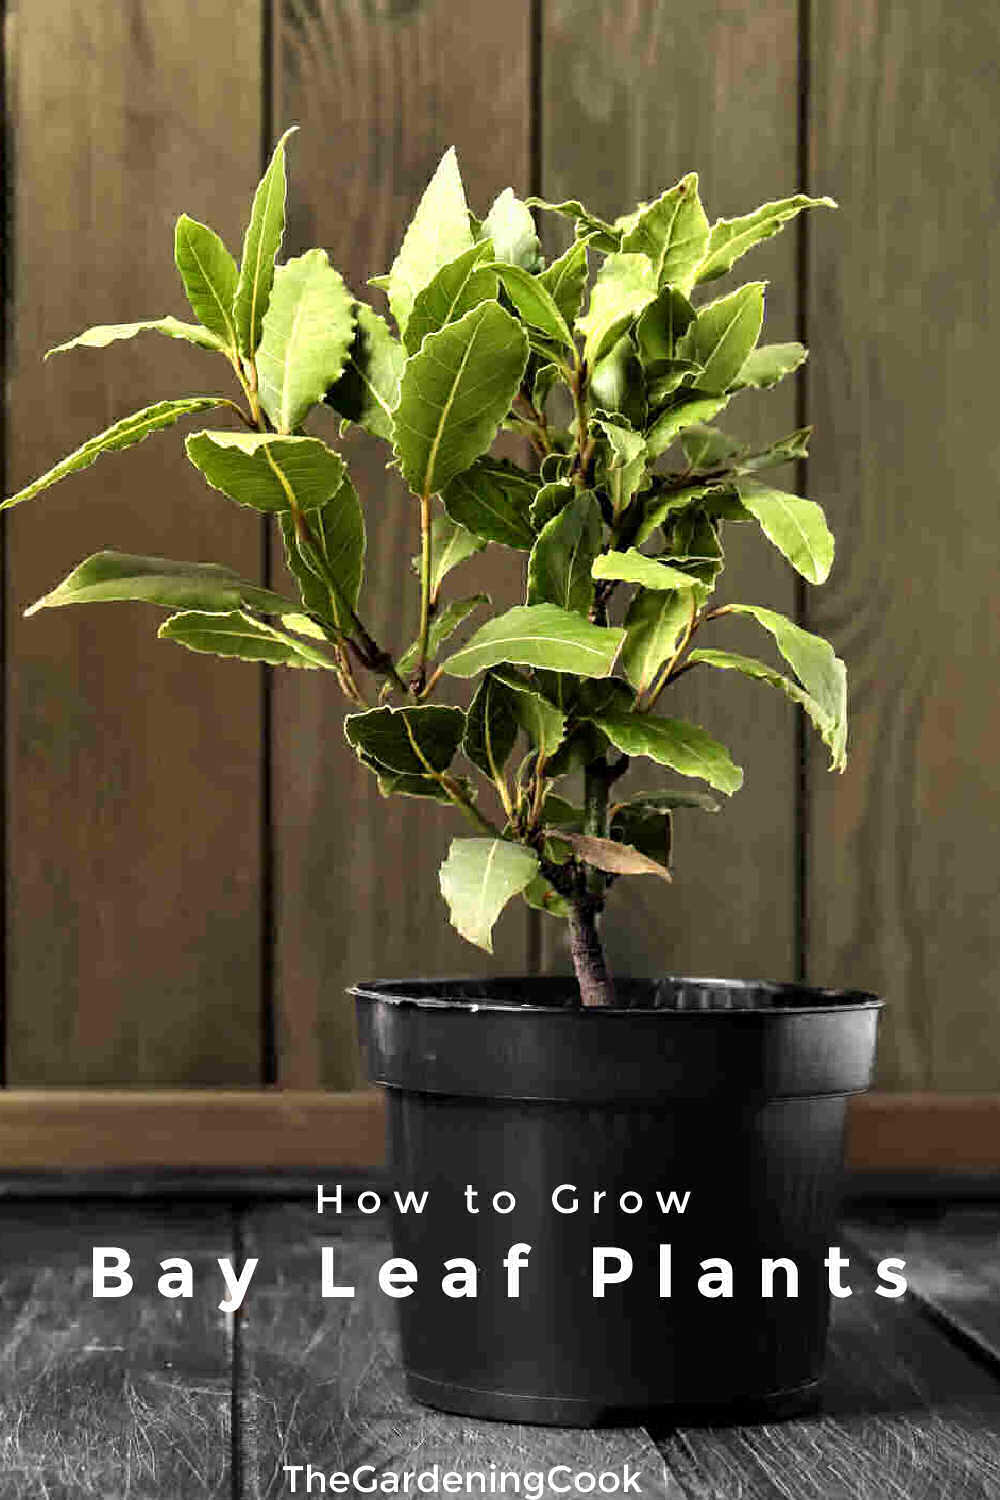 Bay laurel grown in a pot with words How to Grow Bay Leaf Plants.